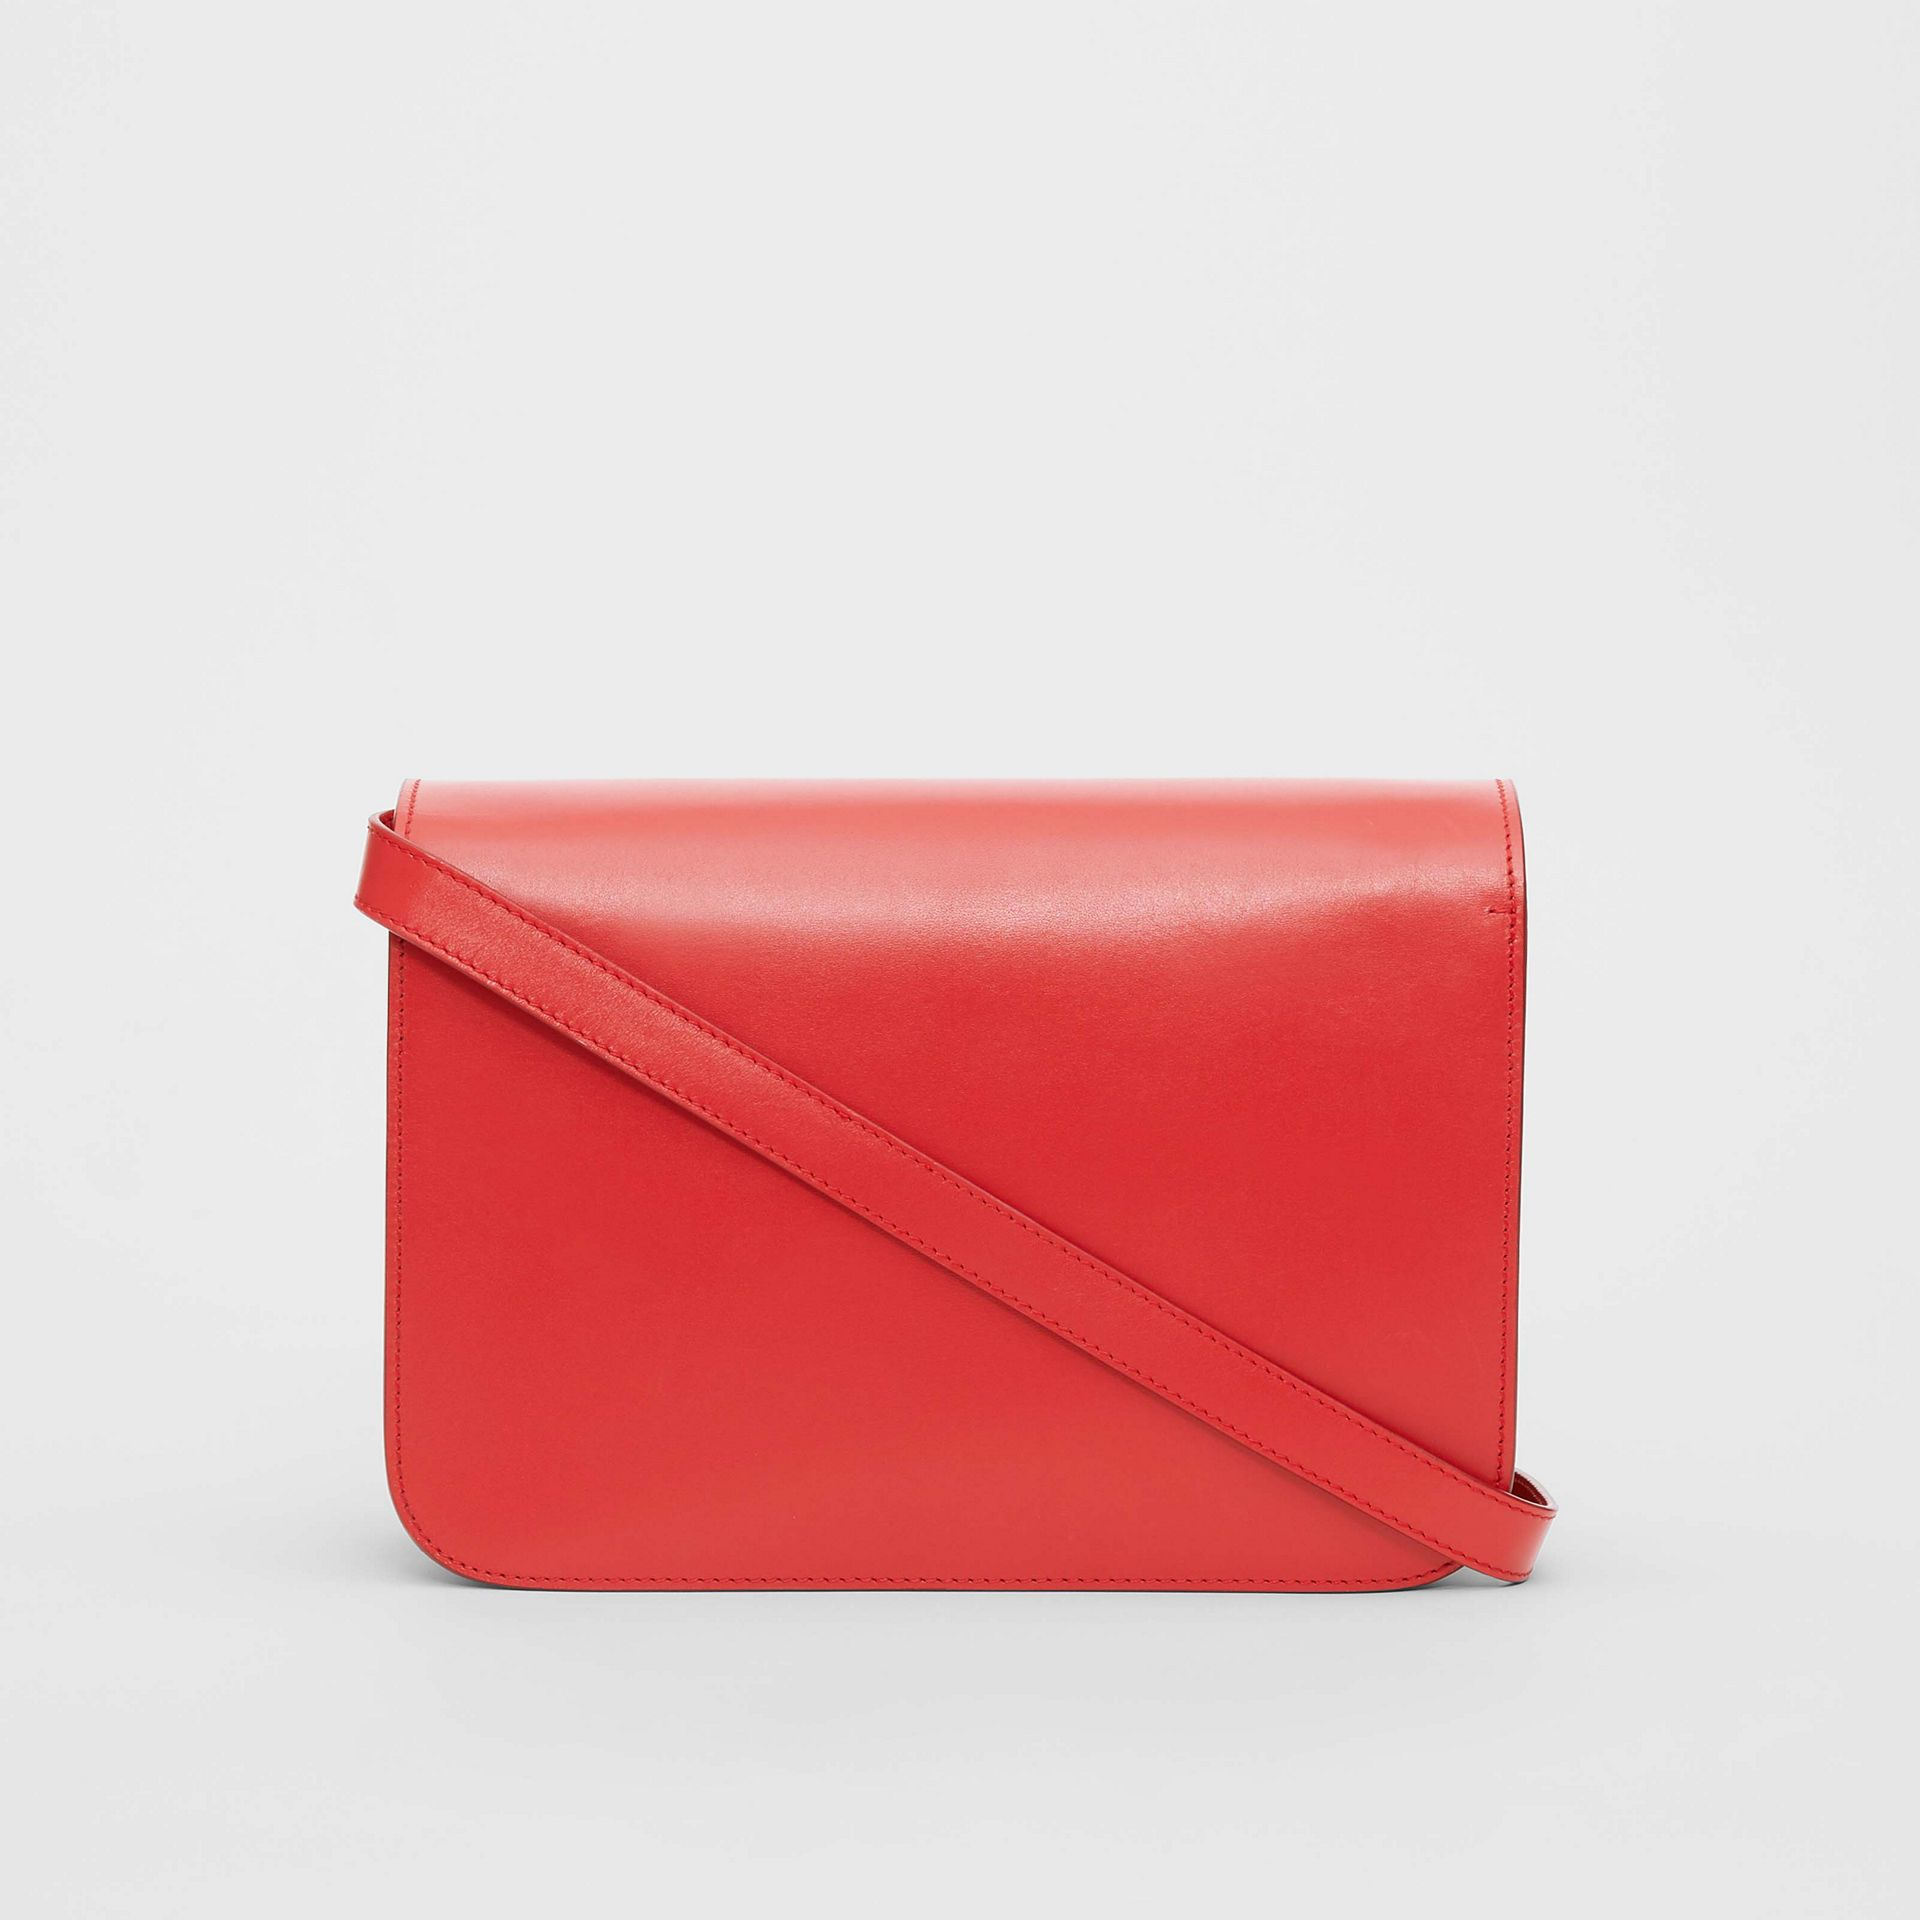 Medium Leather TB Bag in Bright Red - Women | Burberry Australia - gallery image 7